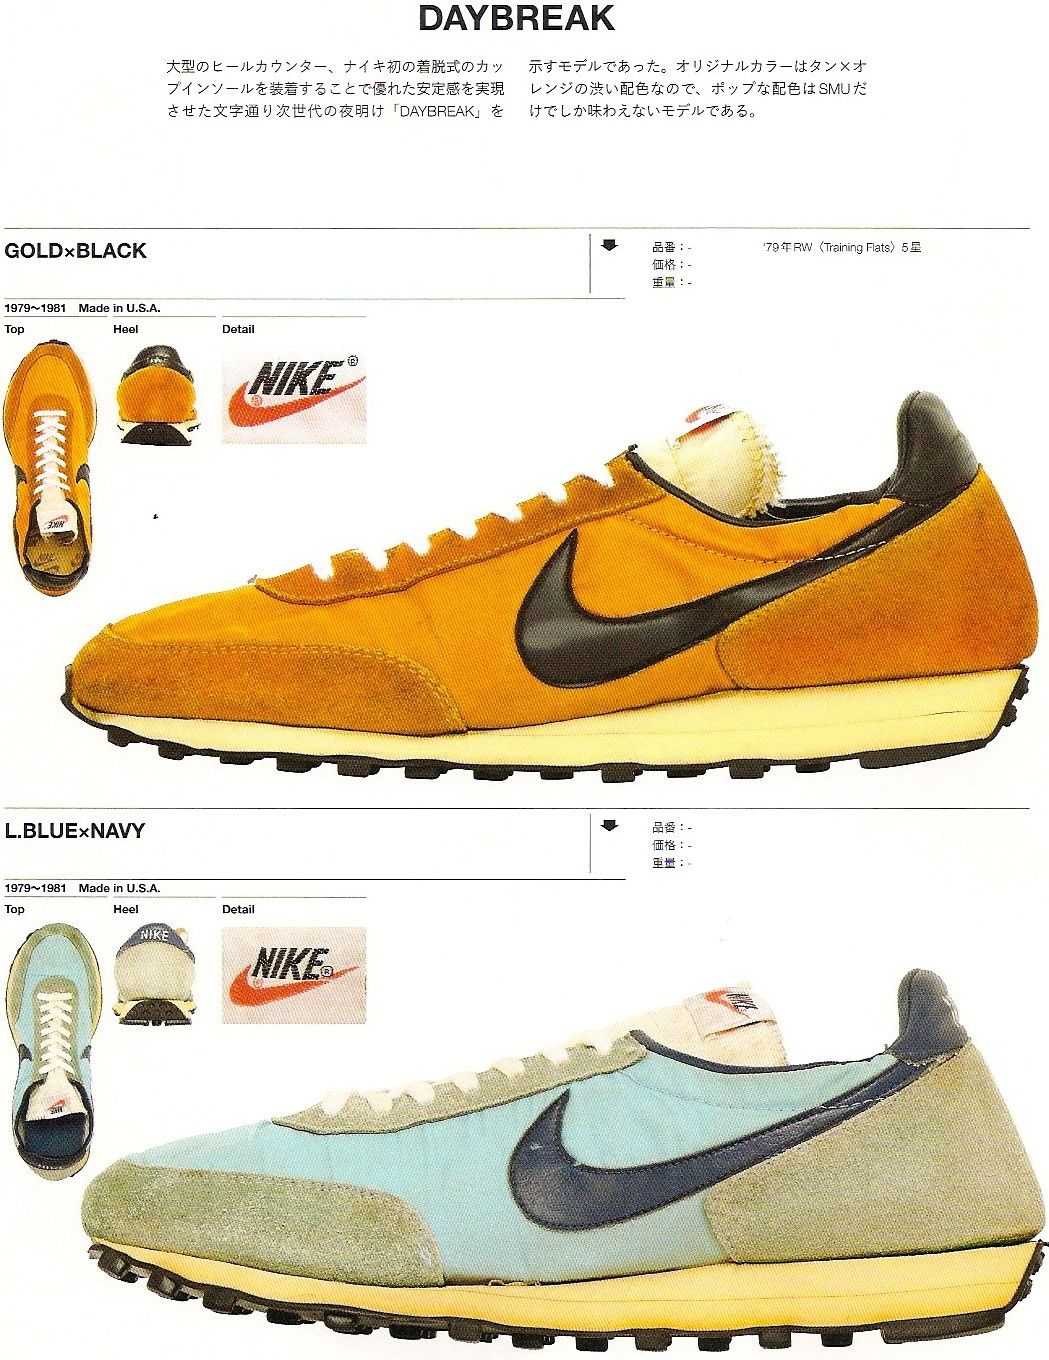 promo code 1c94e 107f5 nike daybreak special make up